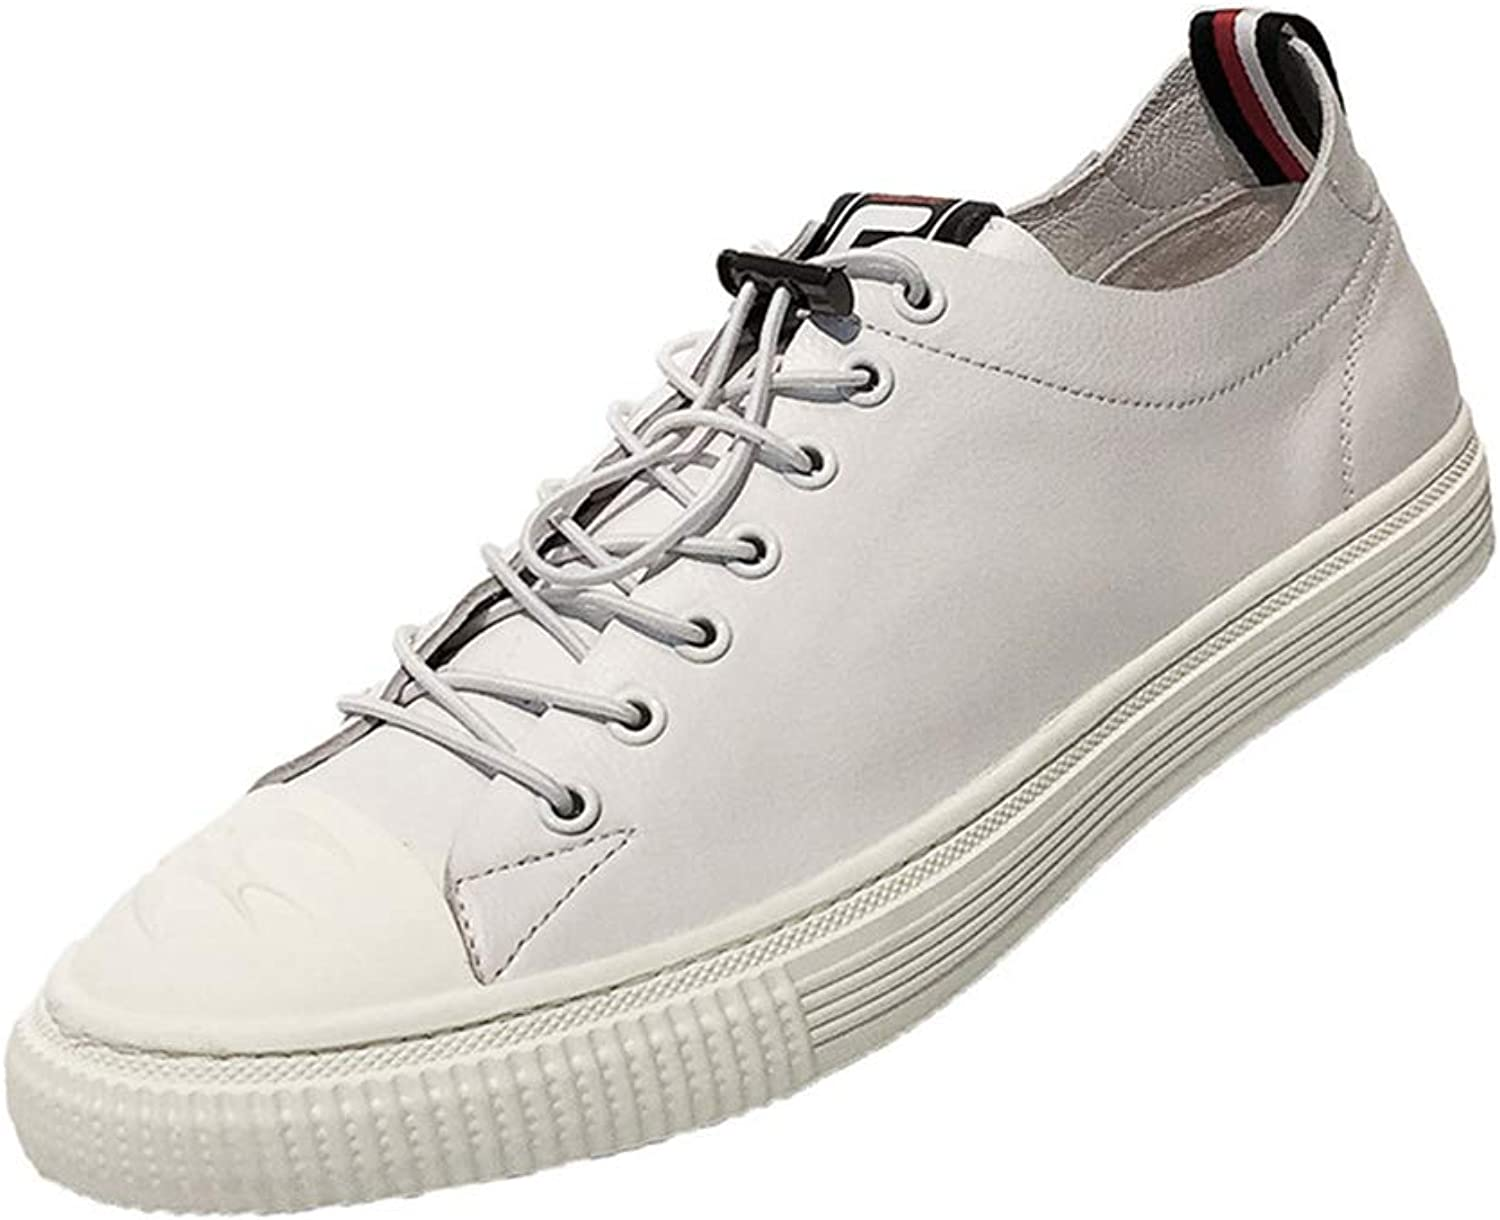 2019 Men Casual shoes Mens Deck shoes for shoes Men Fashion Flats Fashion Sneakers Outdoor Sports shoes,White,38